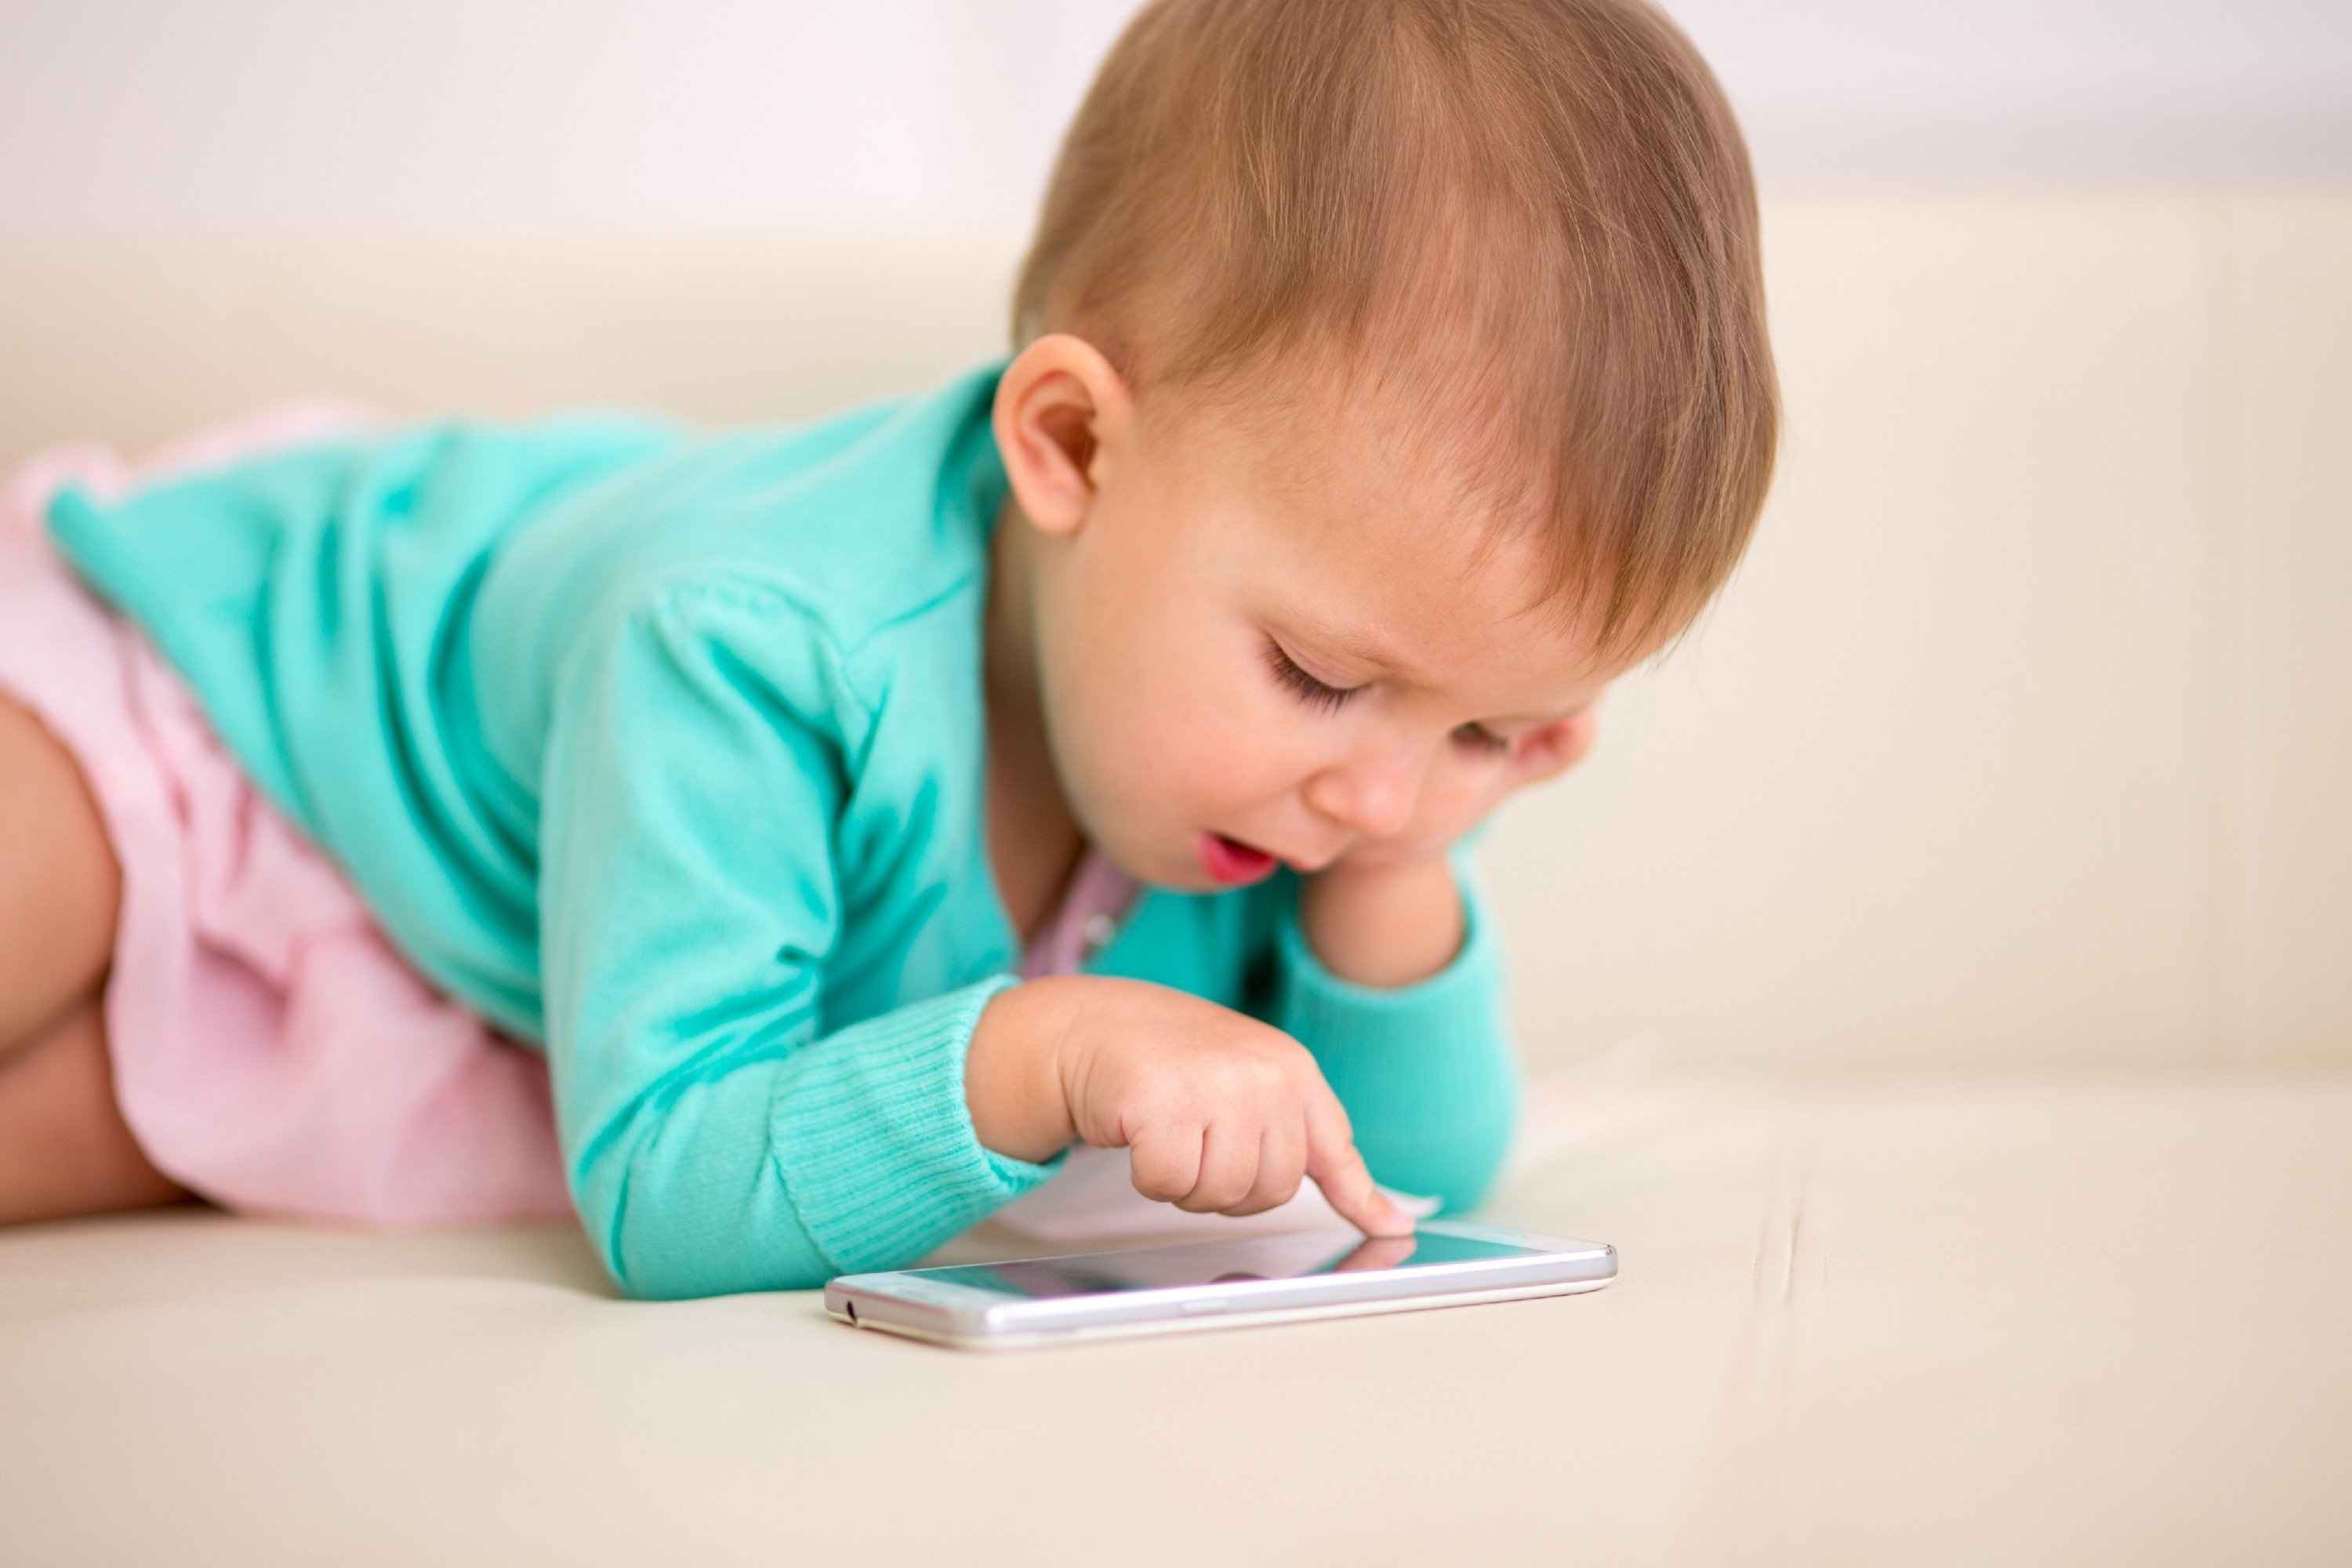 Kid playing on a smartphone. | Photo: Shutterstock